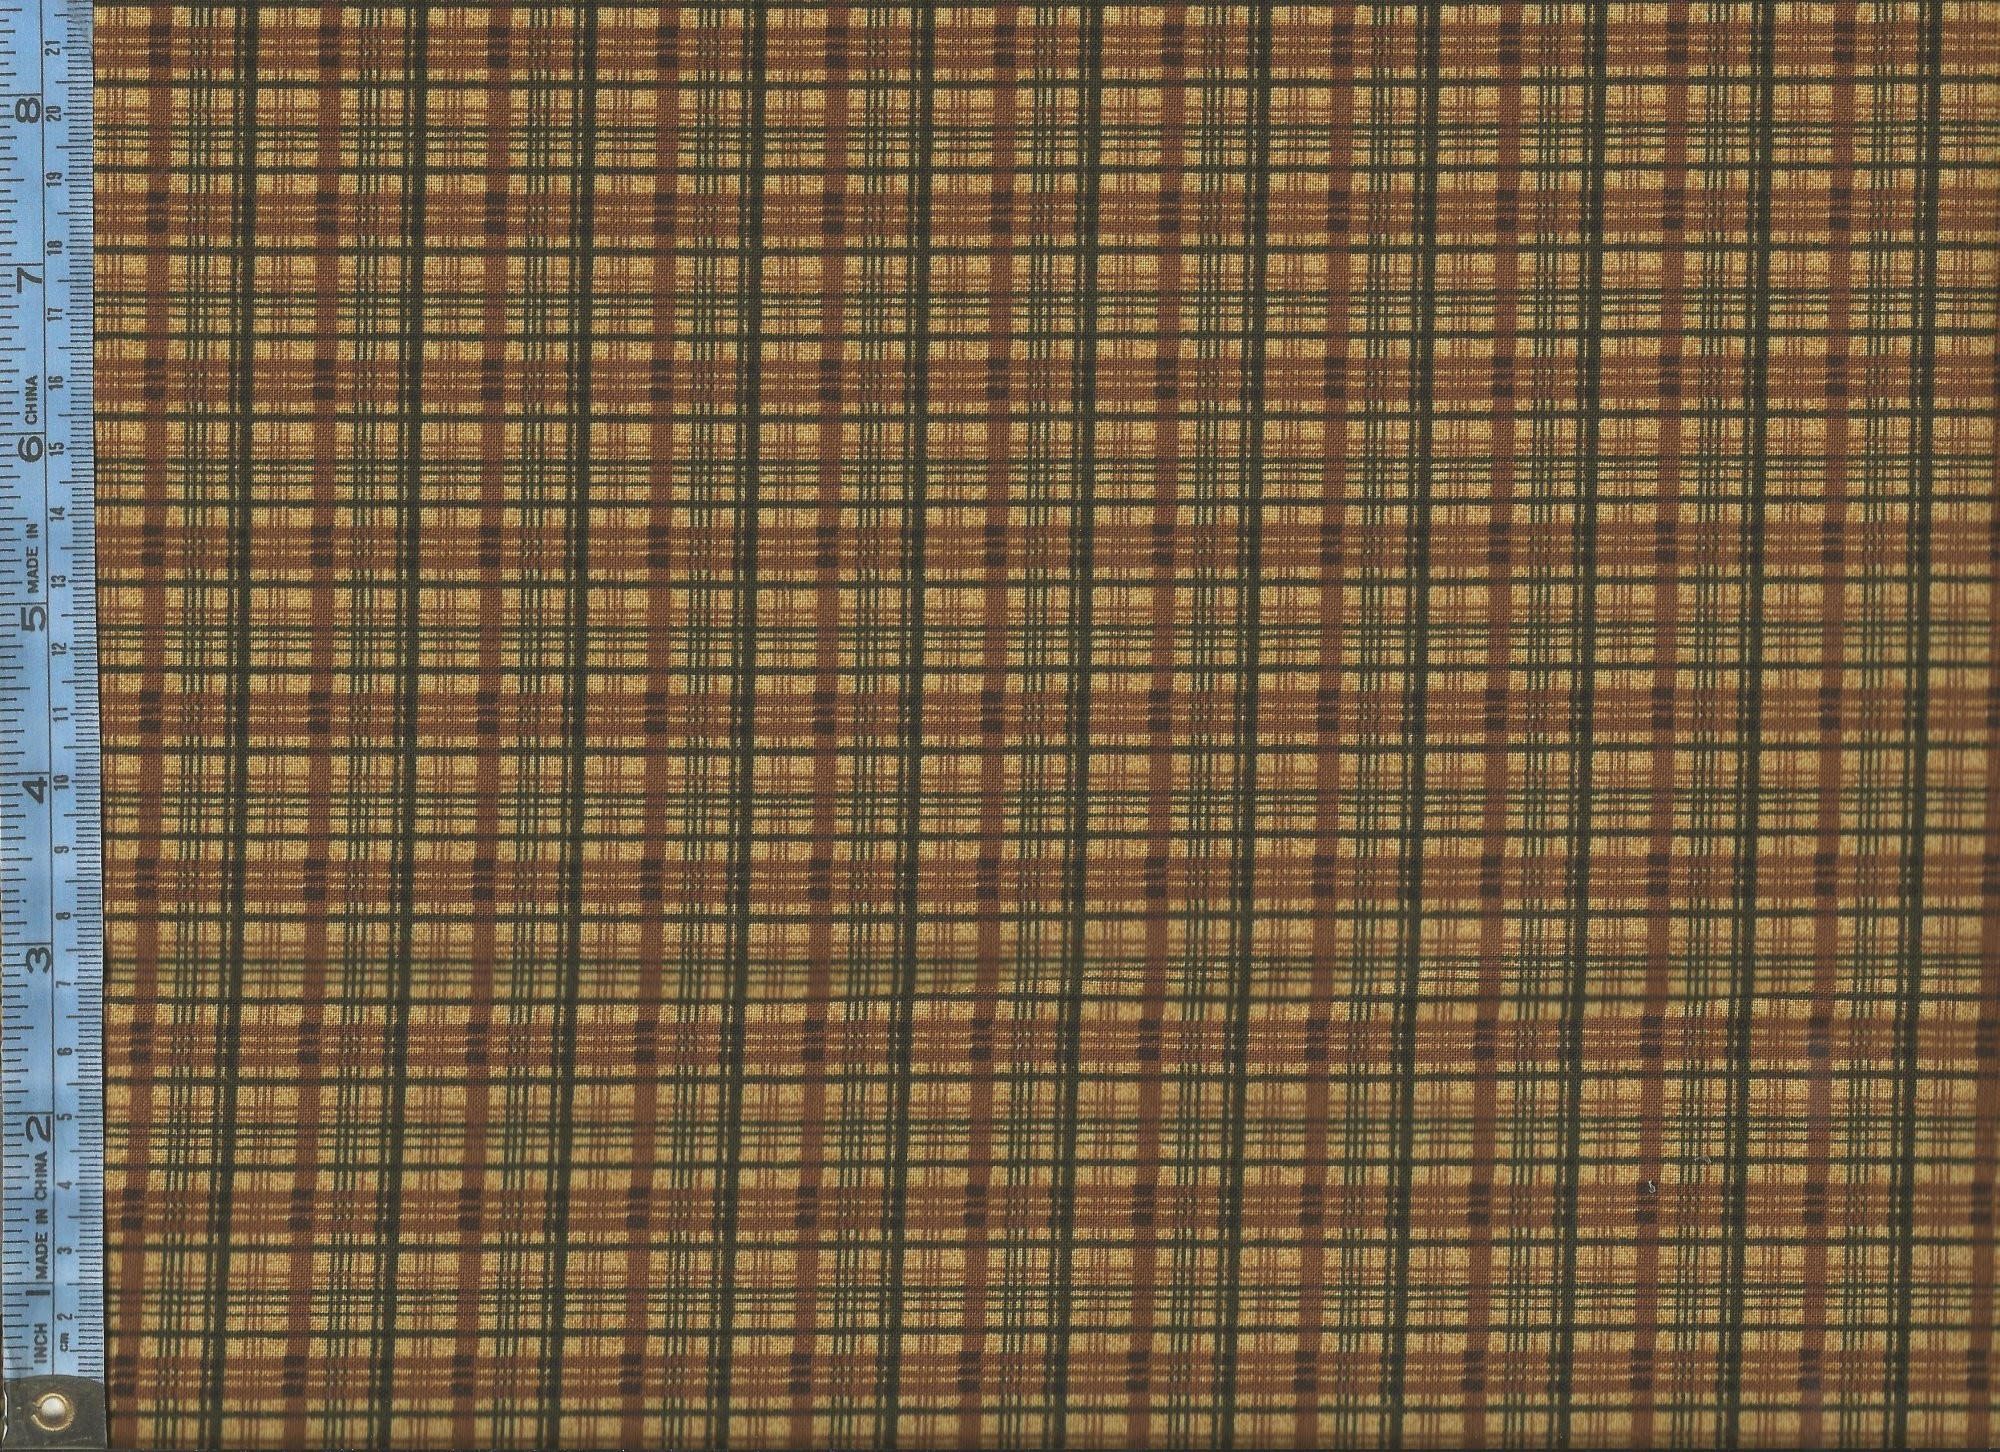 Hd Wallpaper Texture Fall Harvest Plaid Background 183 ① Download Free Stunning Backgrounds For